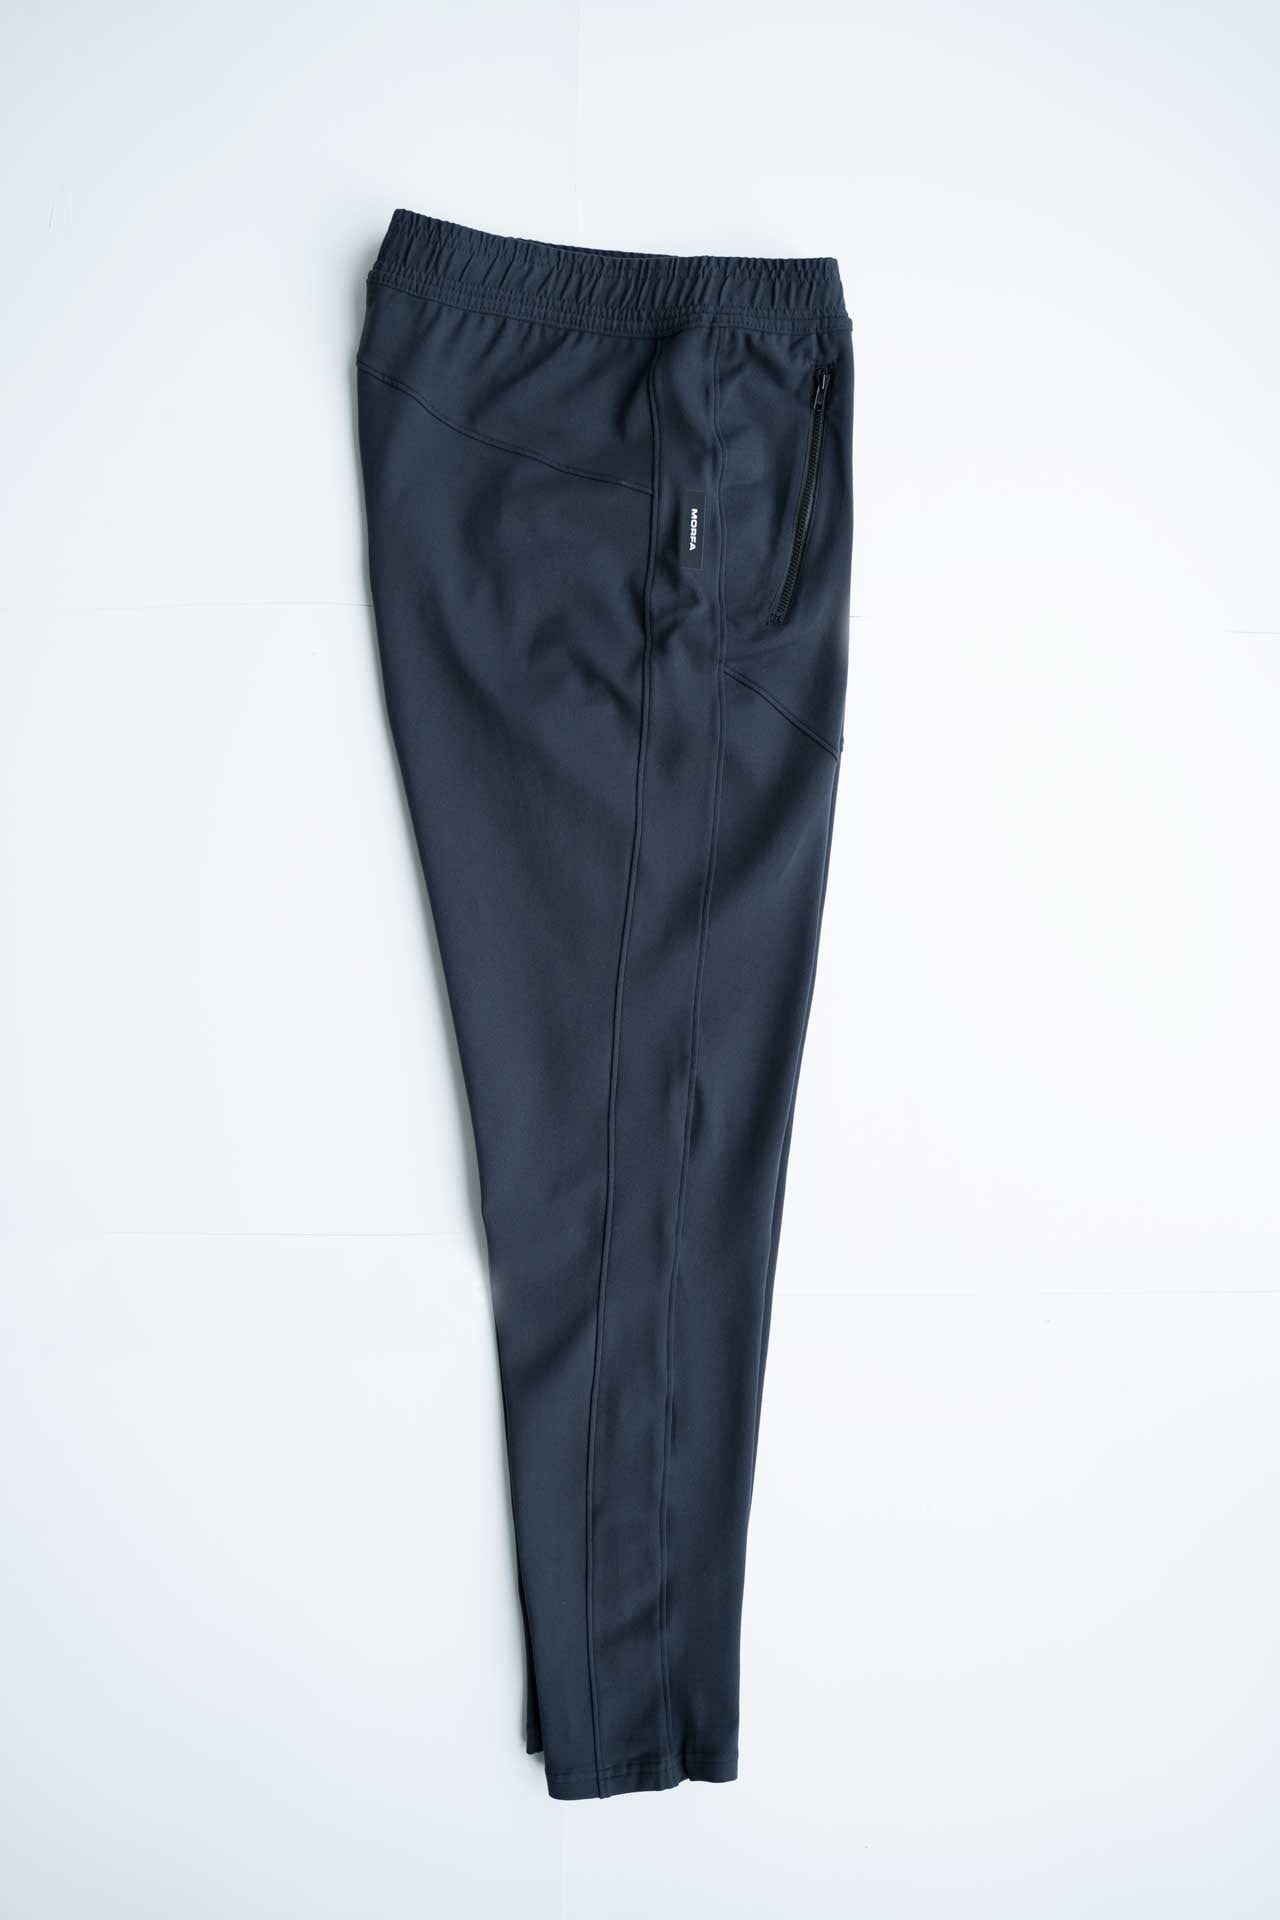 TECH STRETCH TRAINING PANT 2.0 - ONYX BLACK